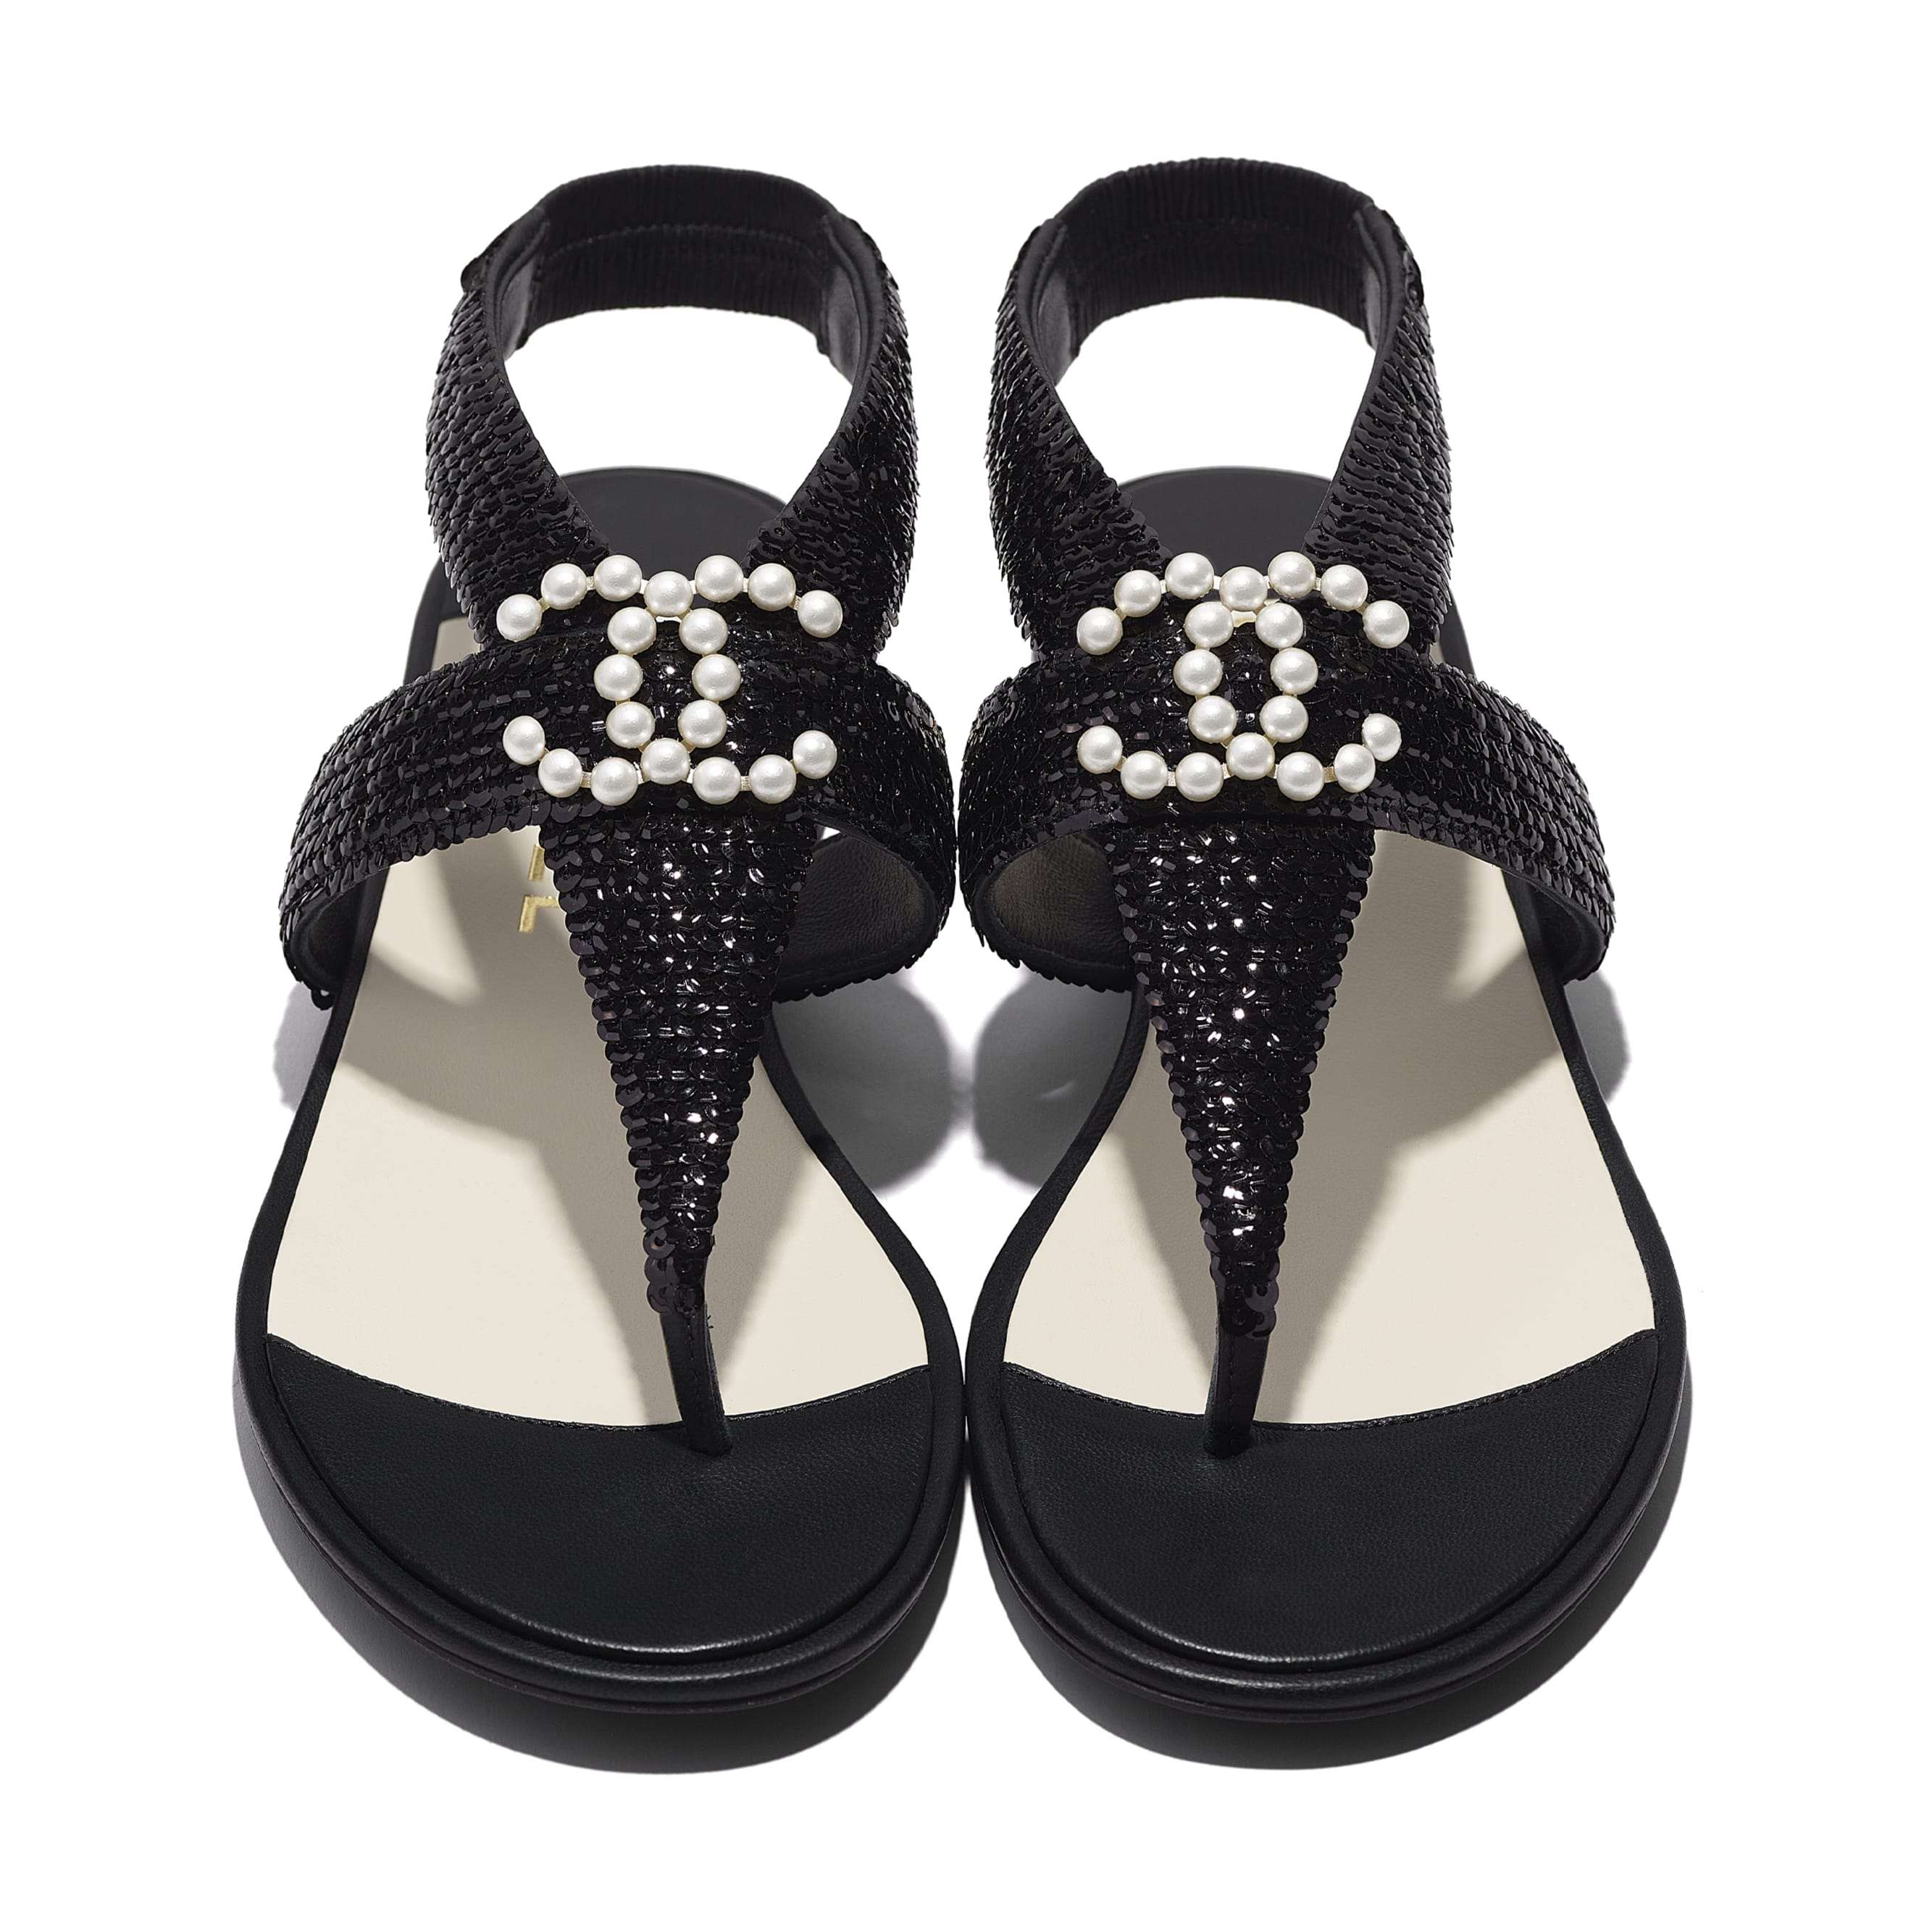 Sandals - Black - Lambskin & Sequins - CHANEL - Extra view - see standard sized version